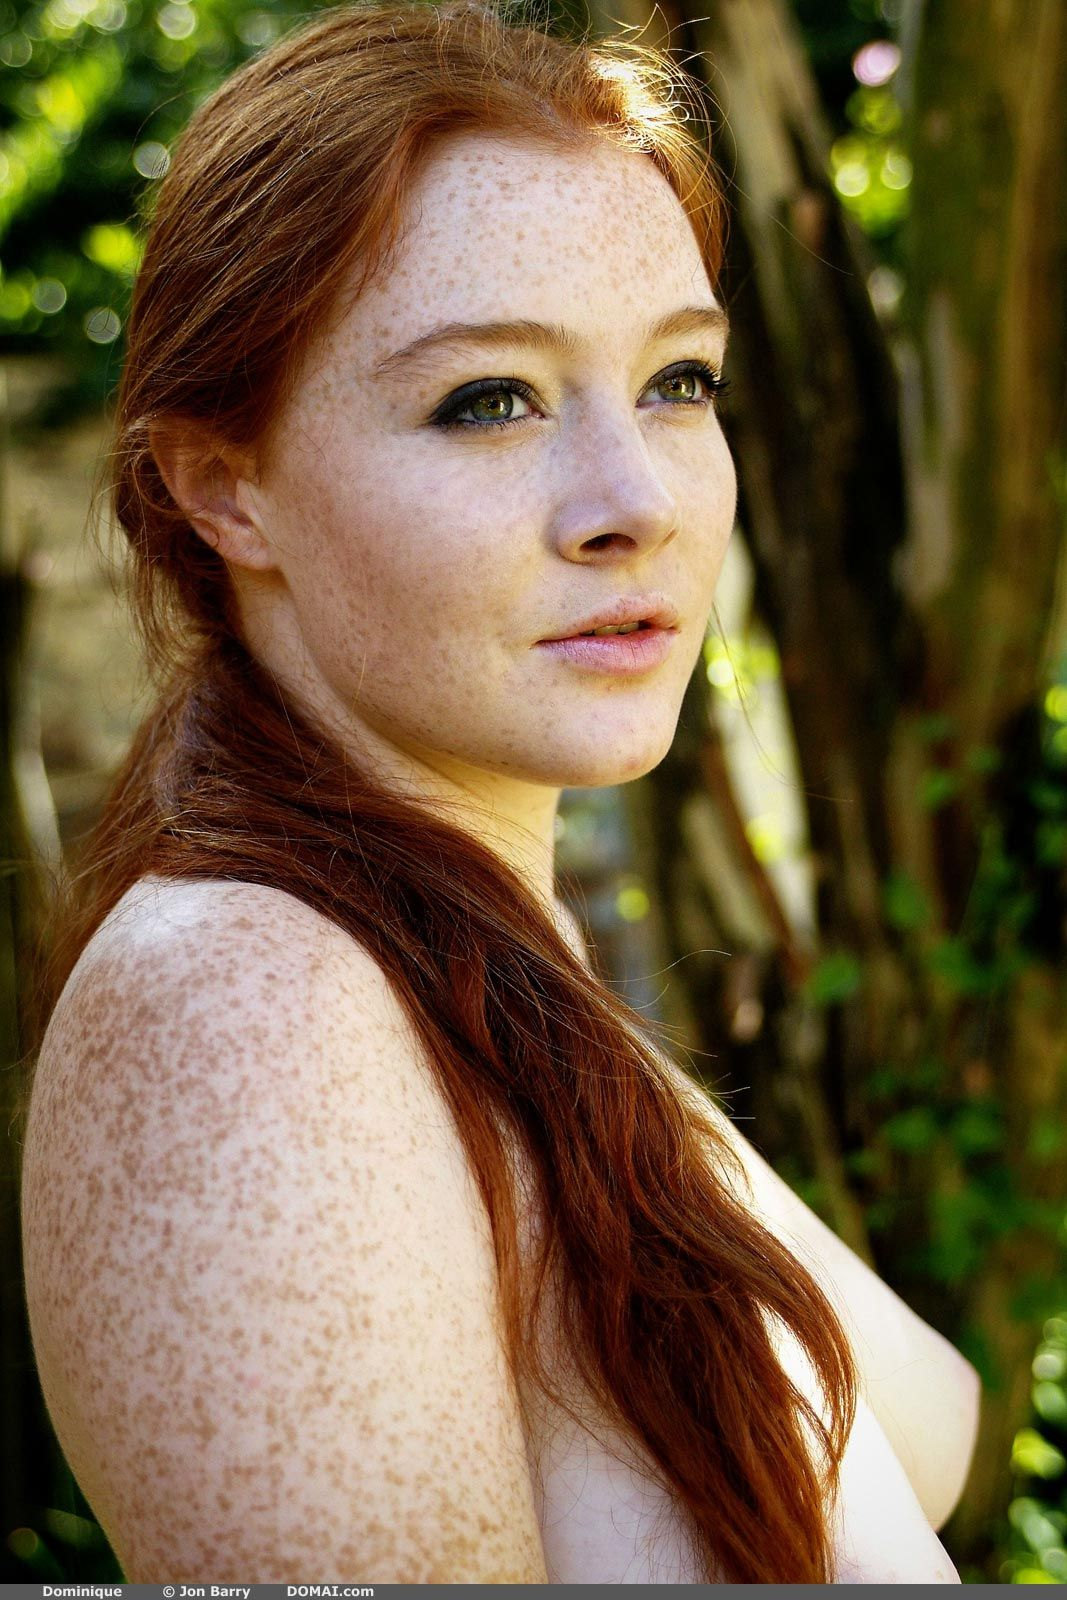 Redhead Dominique | Redheads freckles, Red haired beauty